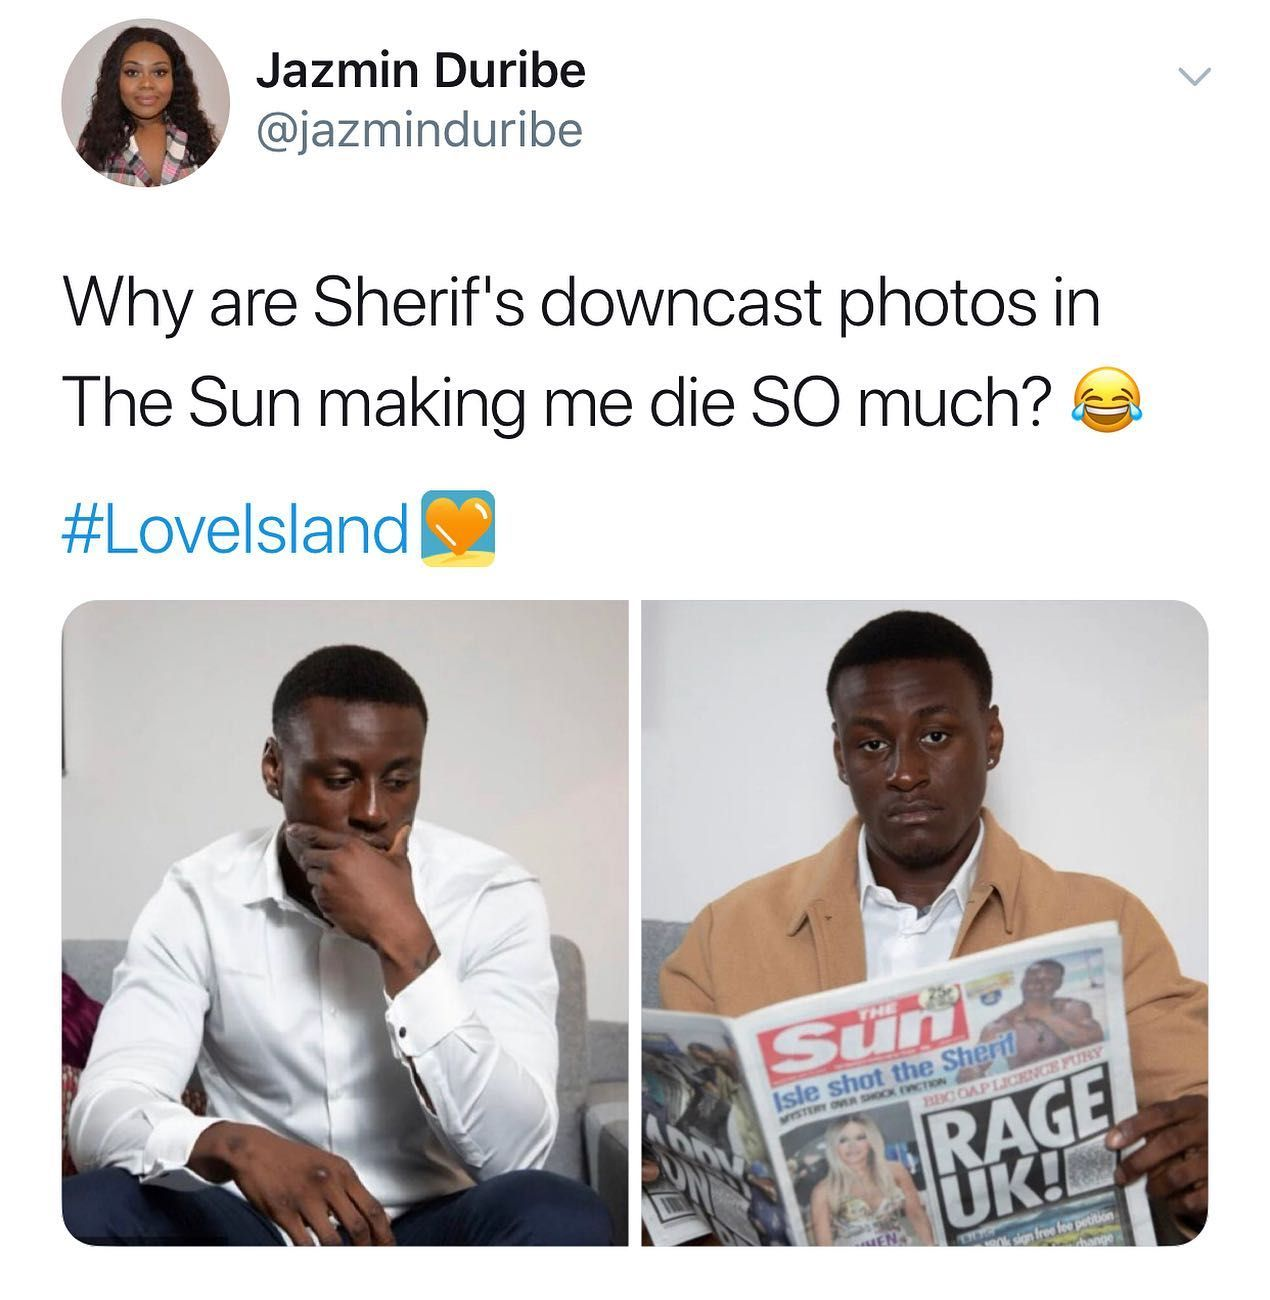 Image may contain: Love Island week two memes, Love Island, memes, reactions, tweet, funny, savage, meme, Sherif, The Sun, Apparel, Shirt, Clothing, Newspaper, Text, Person, Human